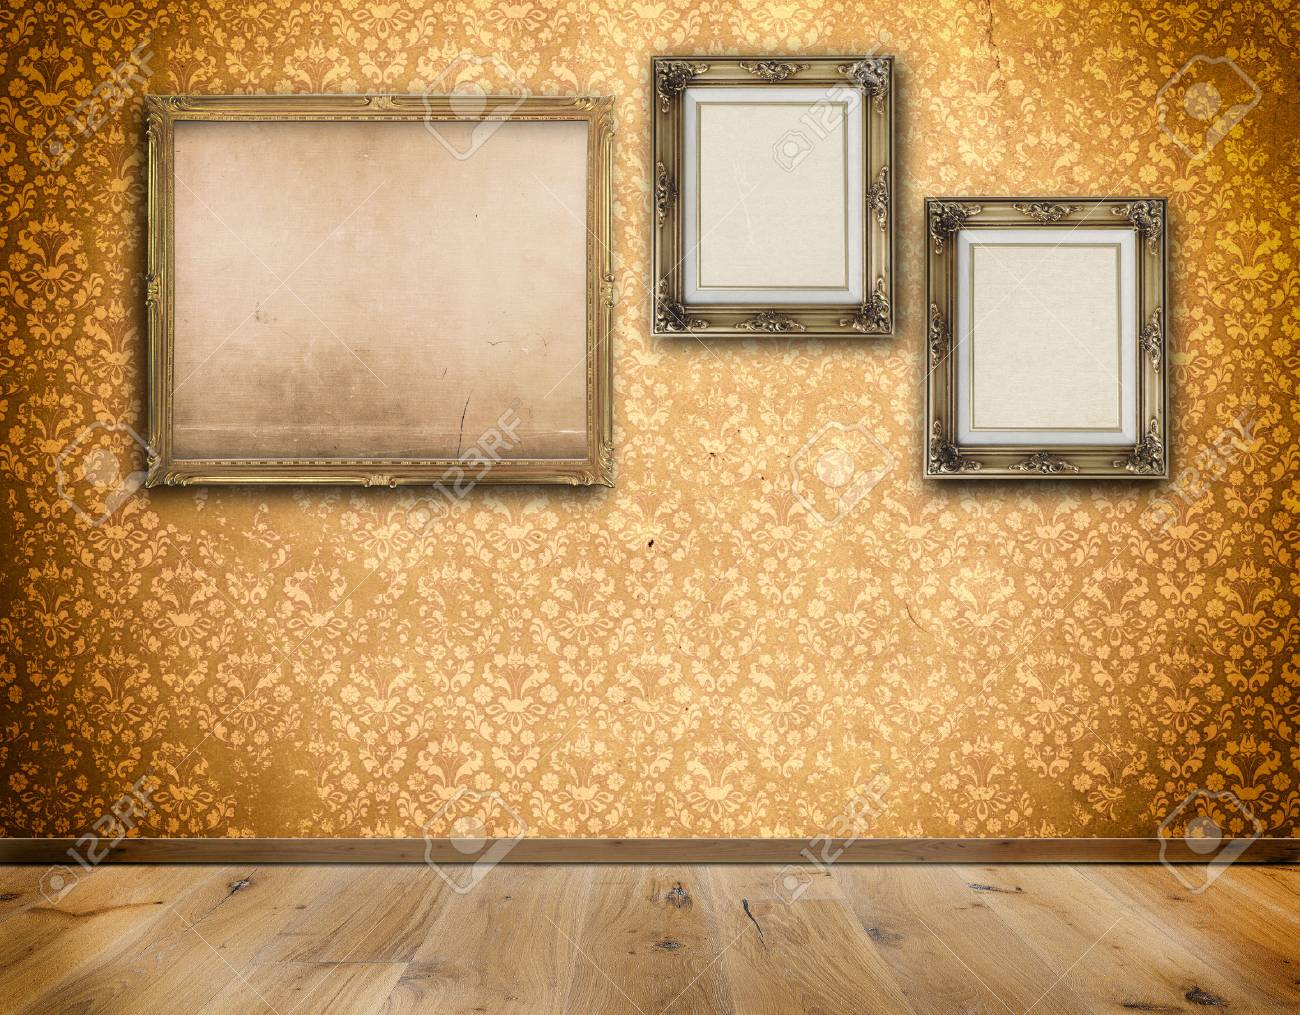 Decorative Old-fashioned Frames With Old Canvas On Wall With.. Stock ...